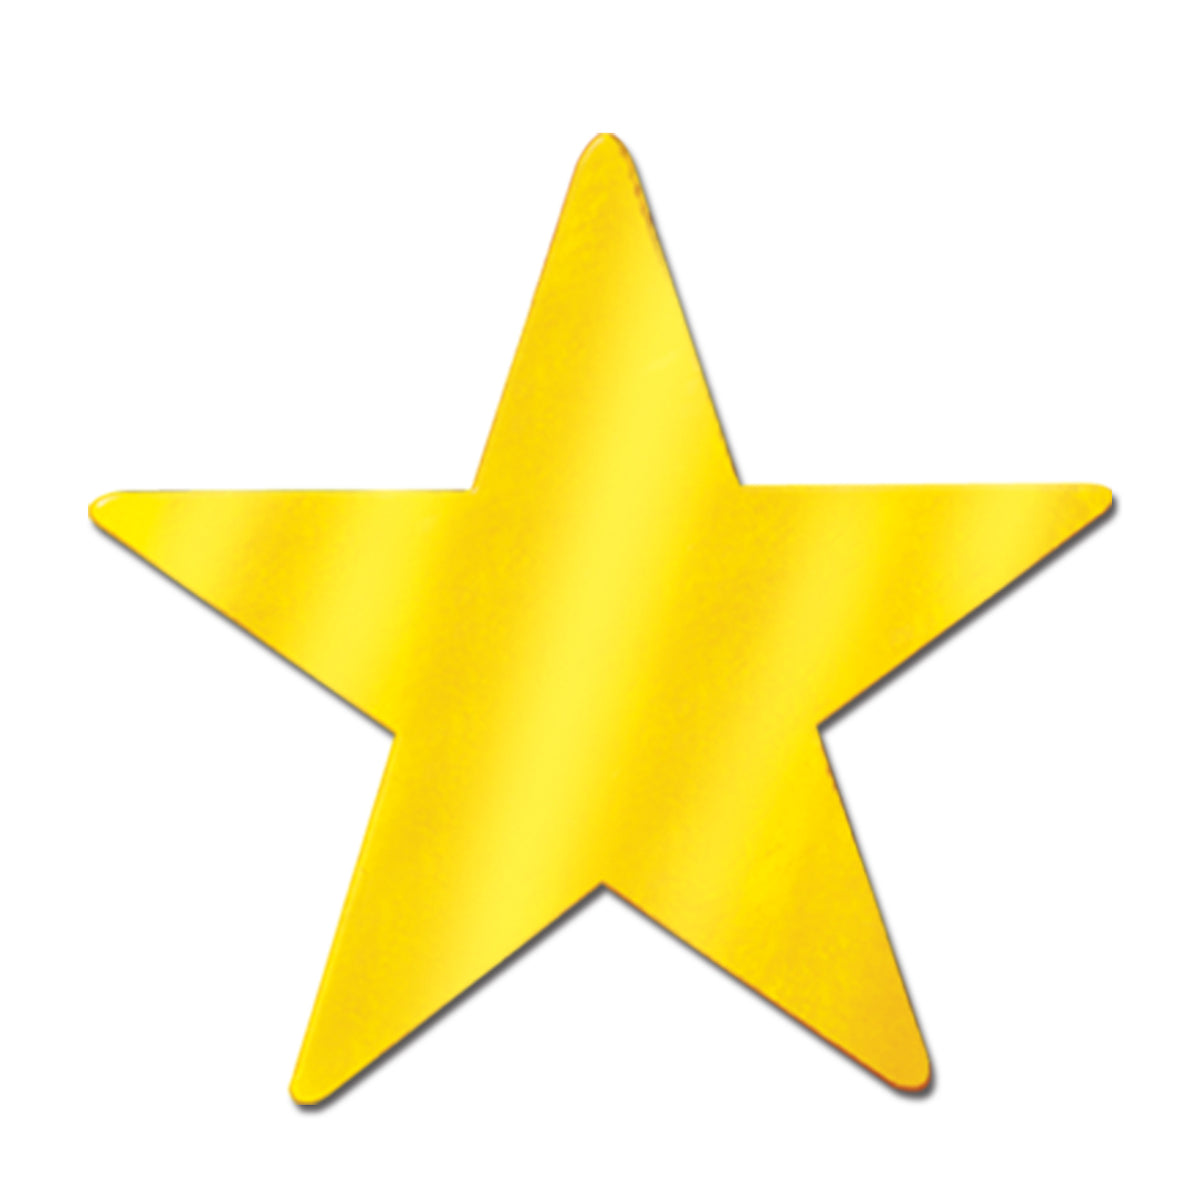 Awards Night Party Supplies - Die-Cut Foil Star - gold